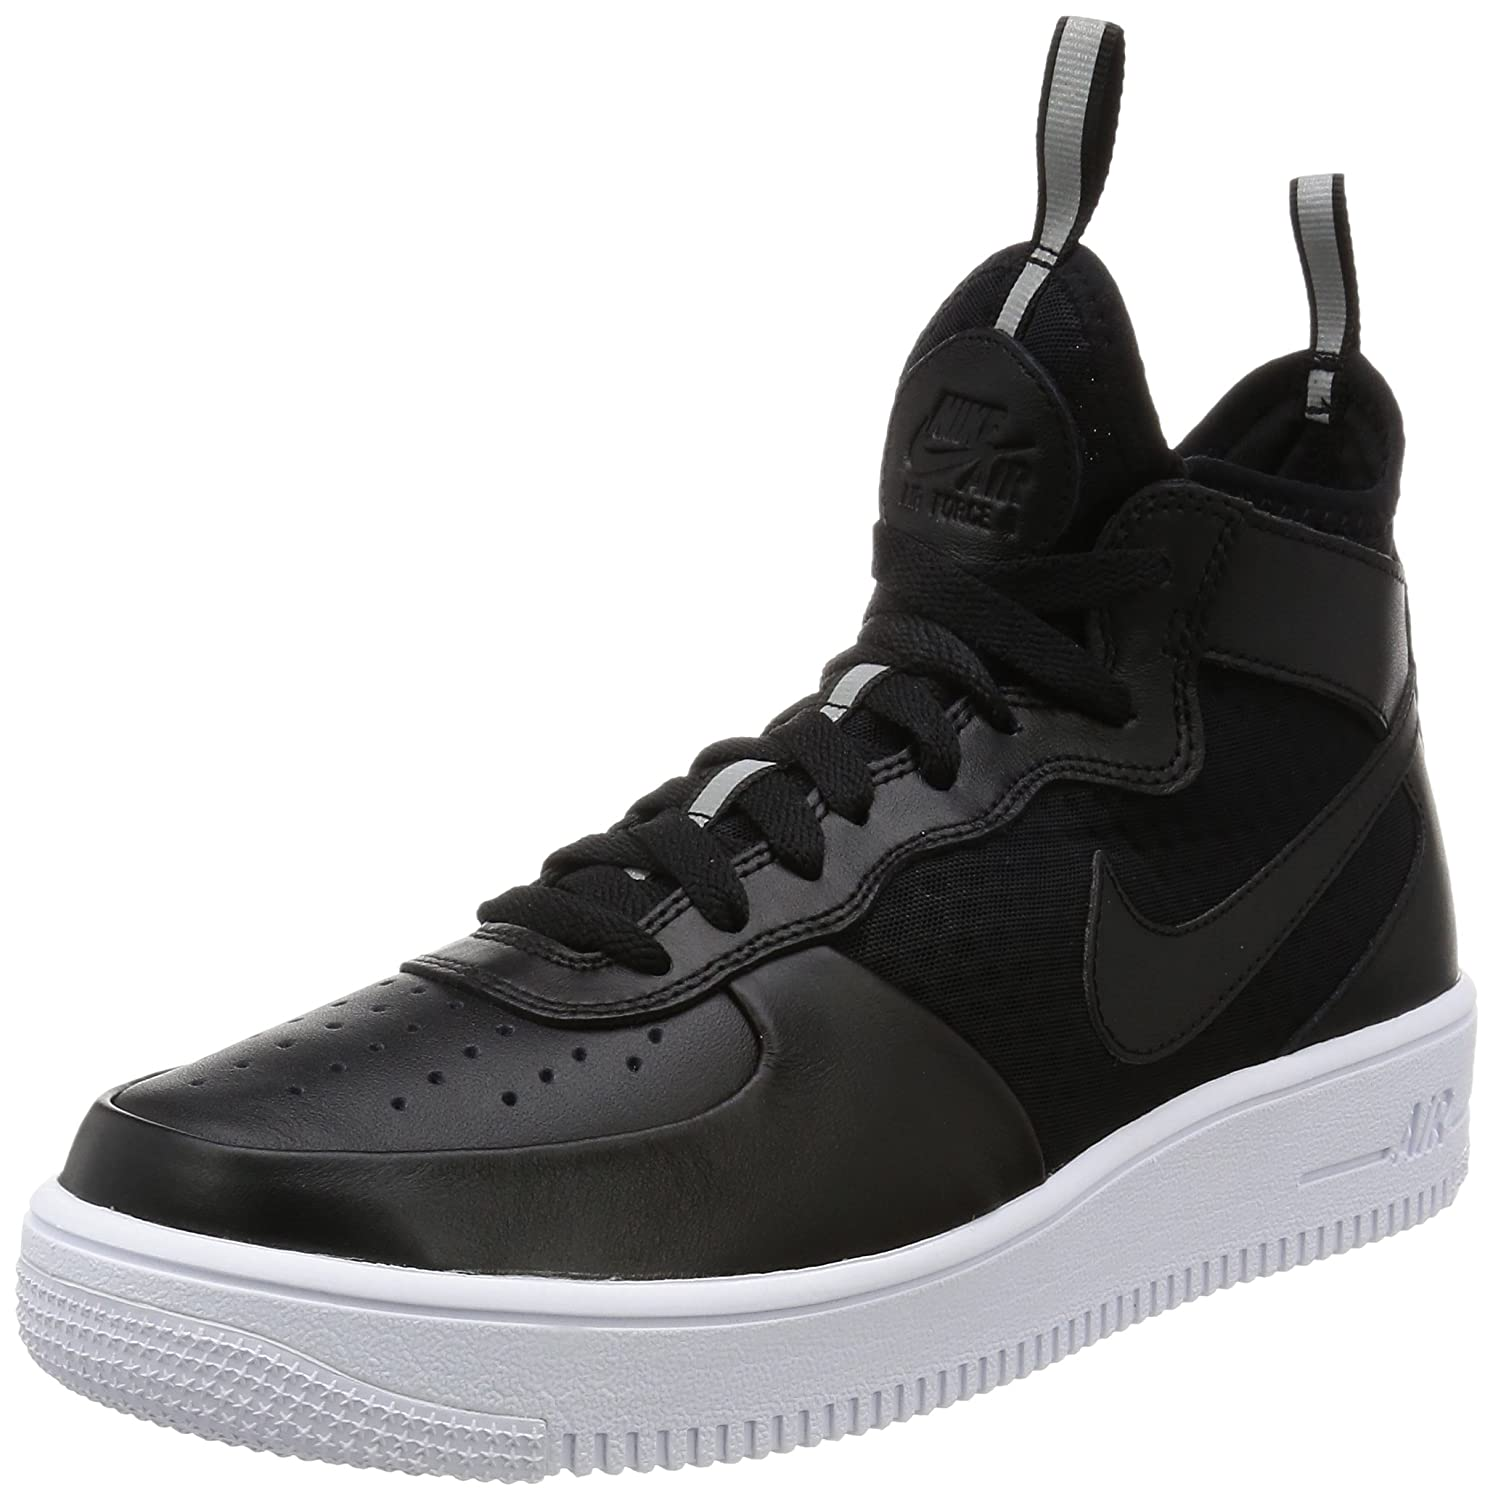 ecde01f3120a6 Nike Men's AIR Force 1 Ultraforce MID, Black/Black-White: Amazon.co.uk:  Shoes & Bags